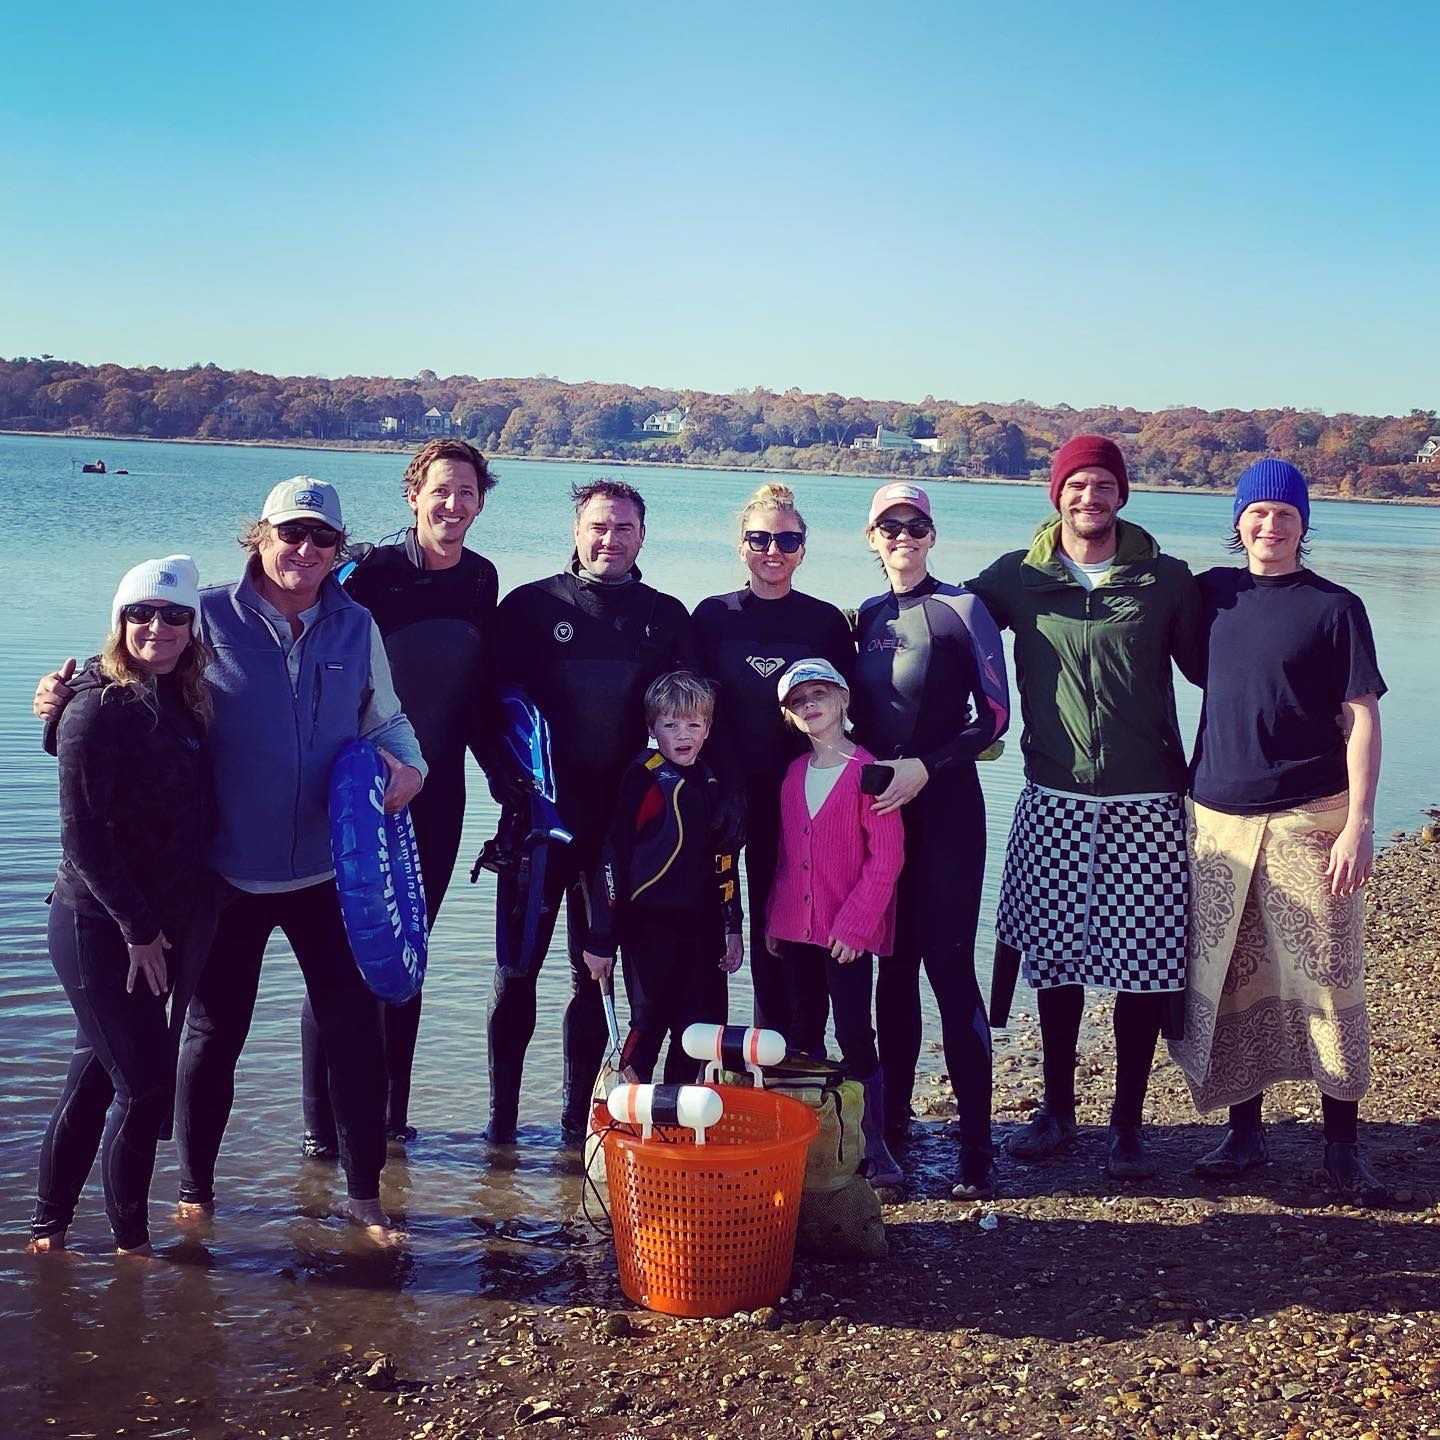 Scallopers descened on Three Mile Harbor in East Hampton on Sunday in hopes of collecting bushel baskets full of bay scallops but found precious few of the valuable shellfish.